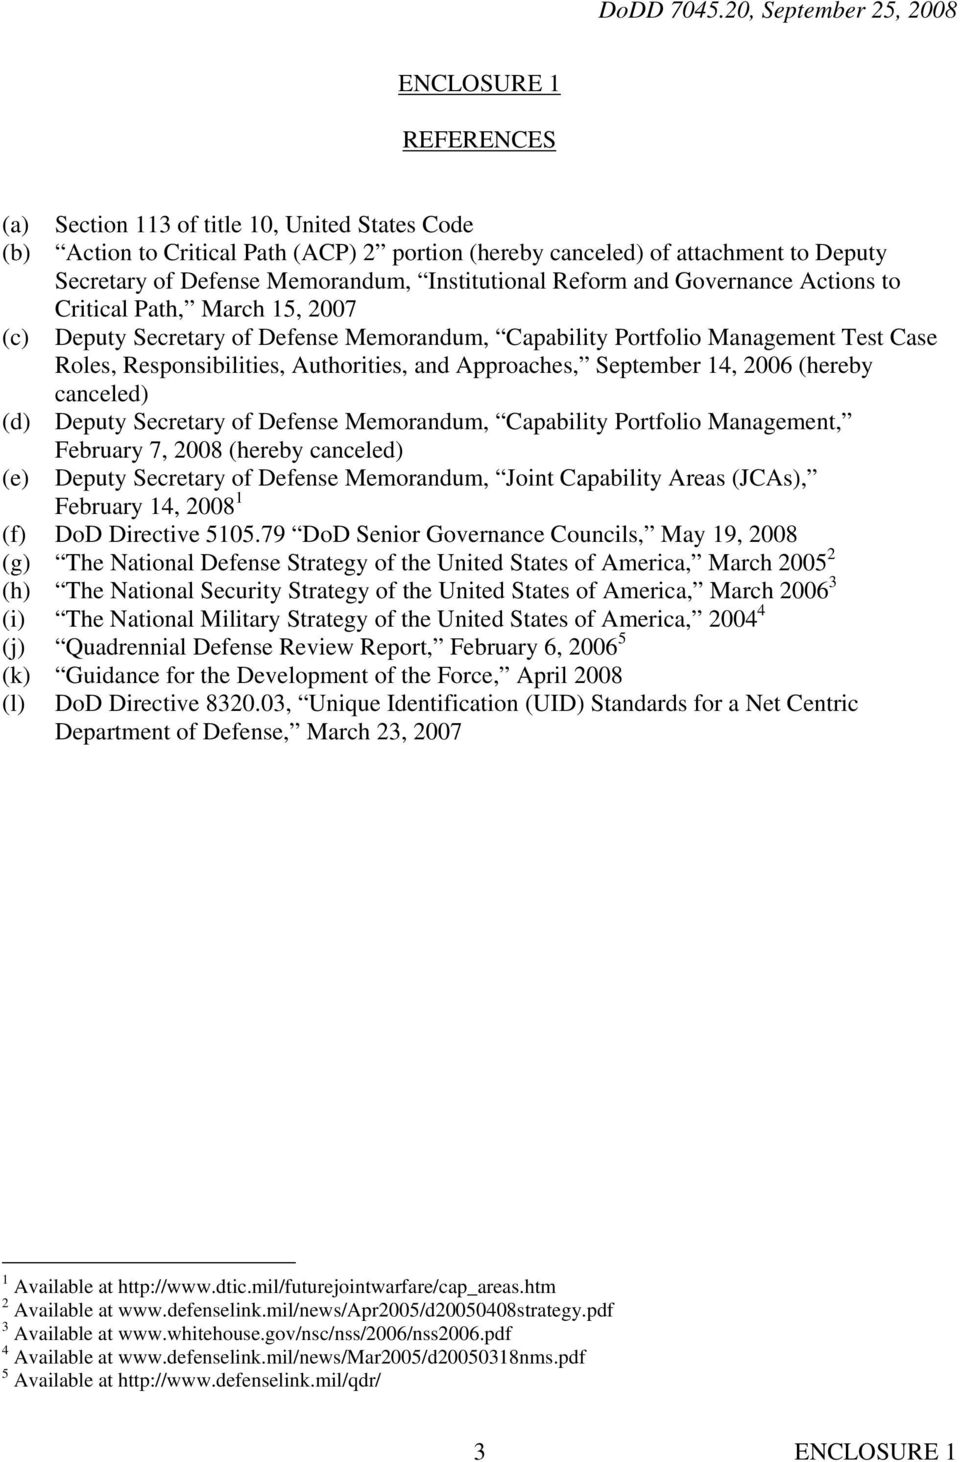 Authorities, and Approaches, September 14, 2006 (hereby canceled) (d) Deputy Secretary of Defense Memorandum, Capability Portfolio Management, February 7, 2008 (hereby canceled) (e) Deputy Secretary